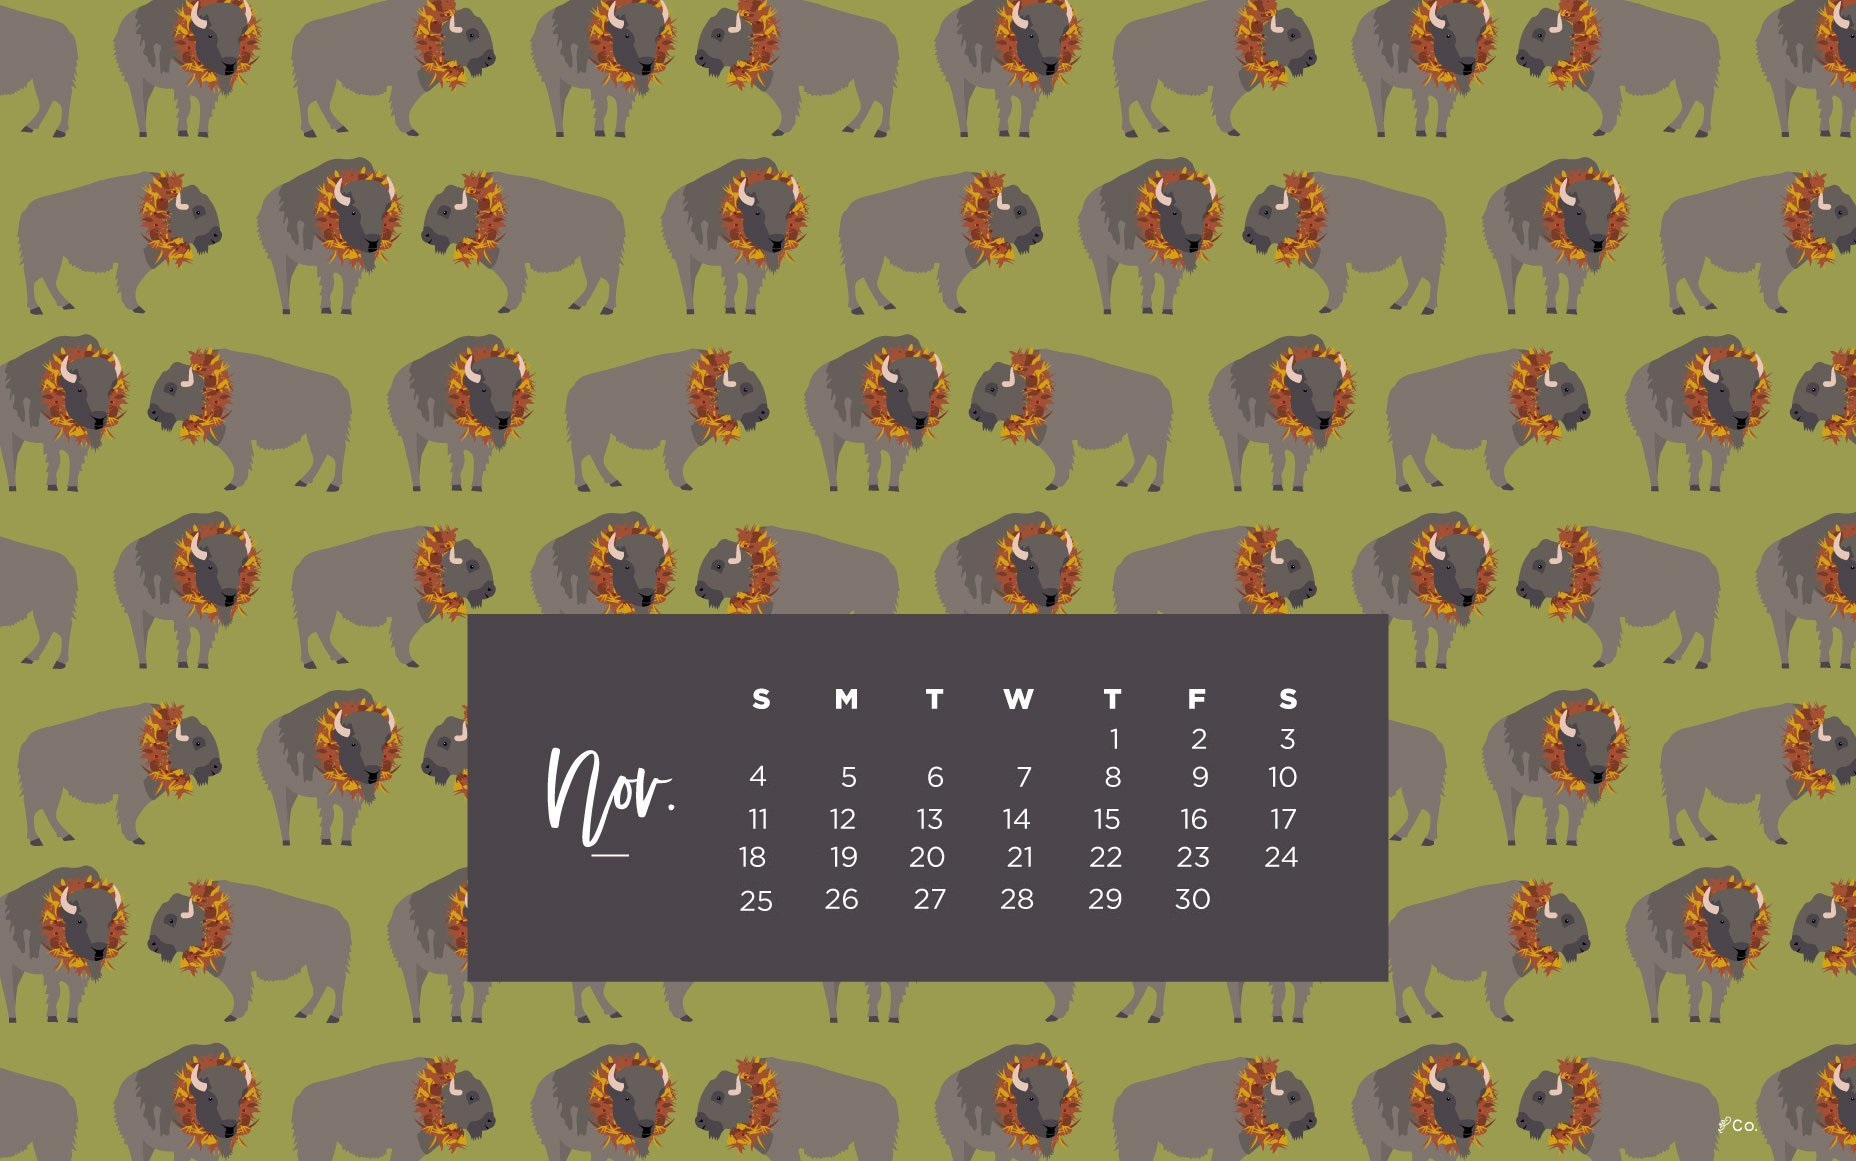 November 2018 Desktop Calendar Wallpaper